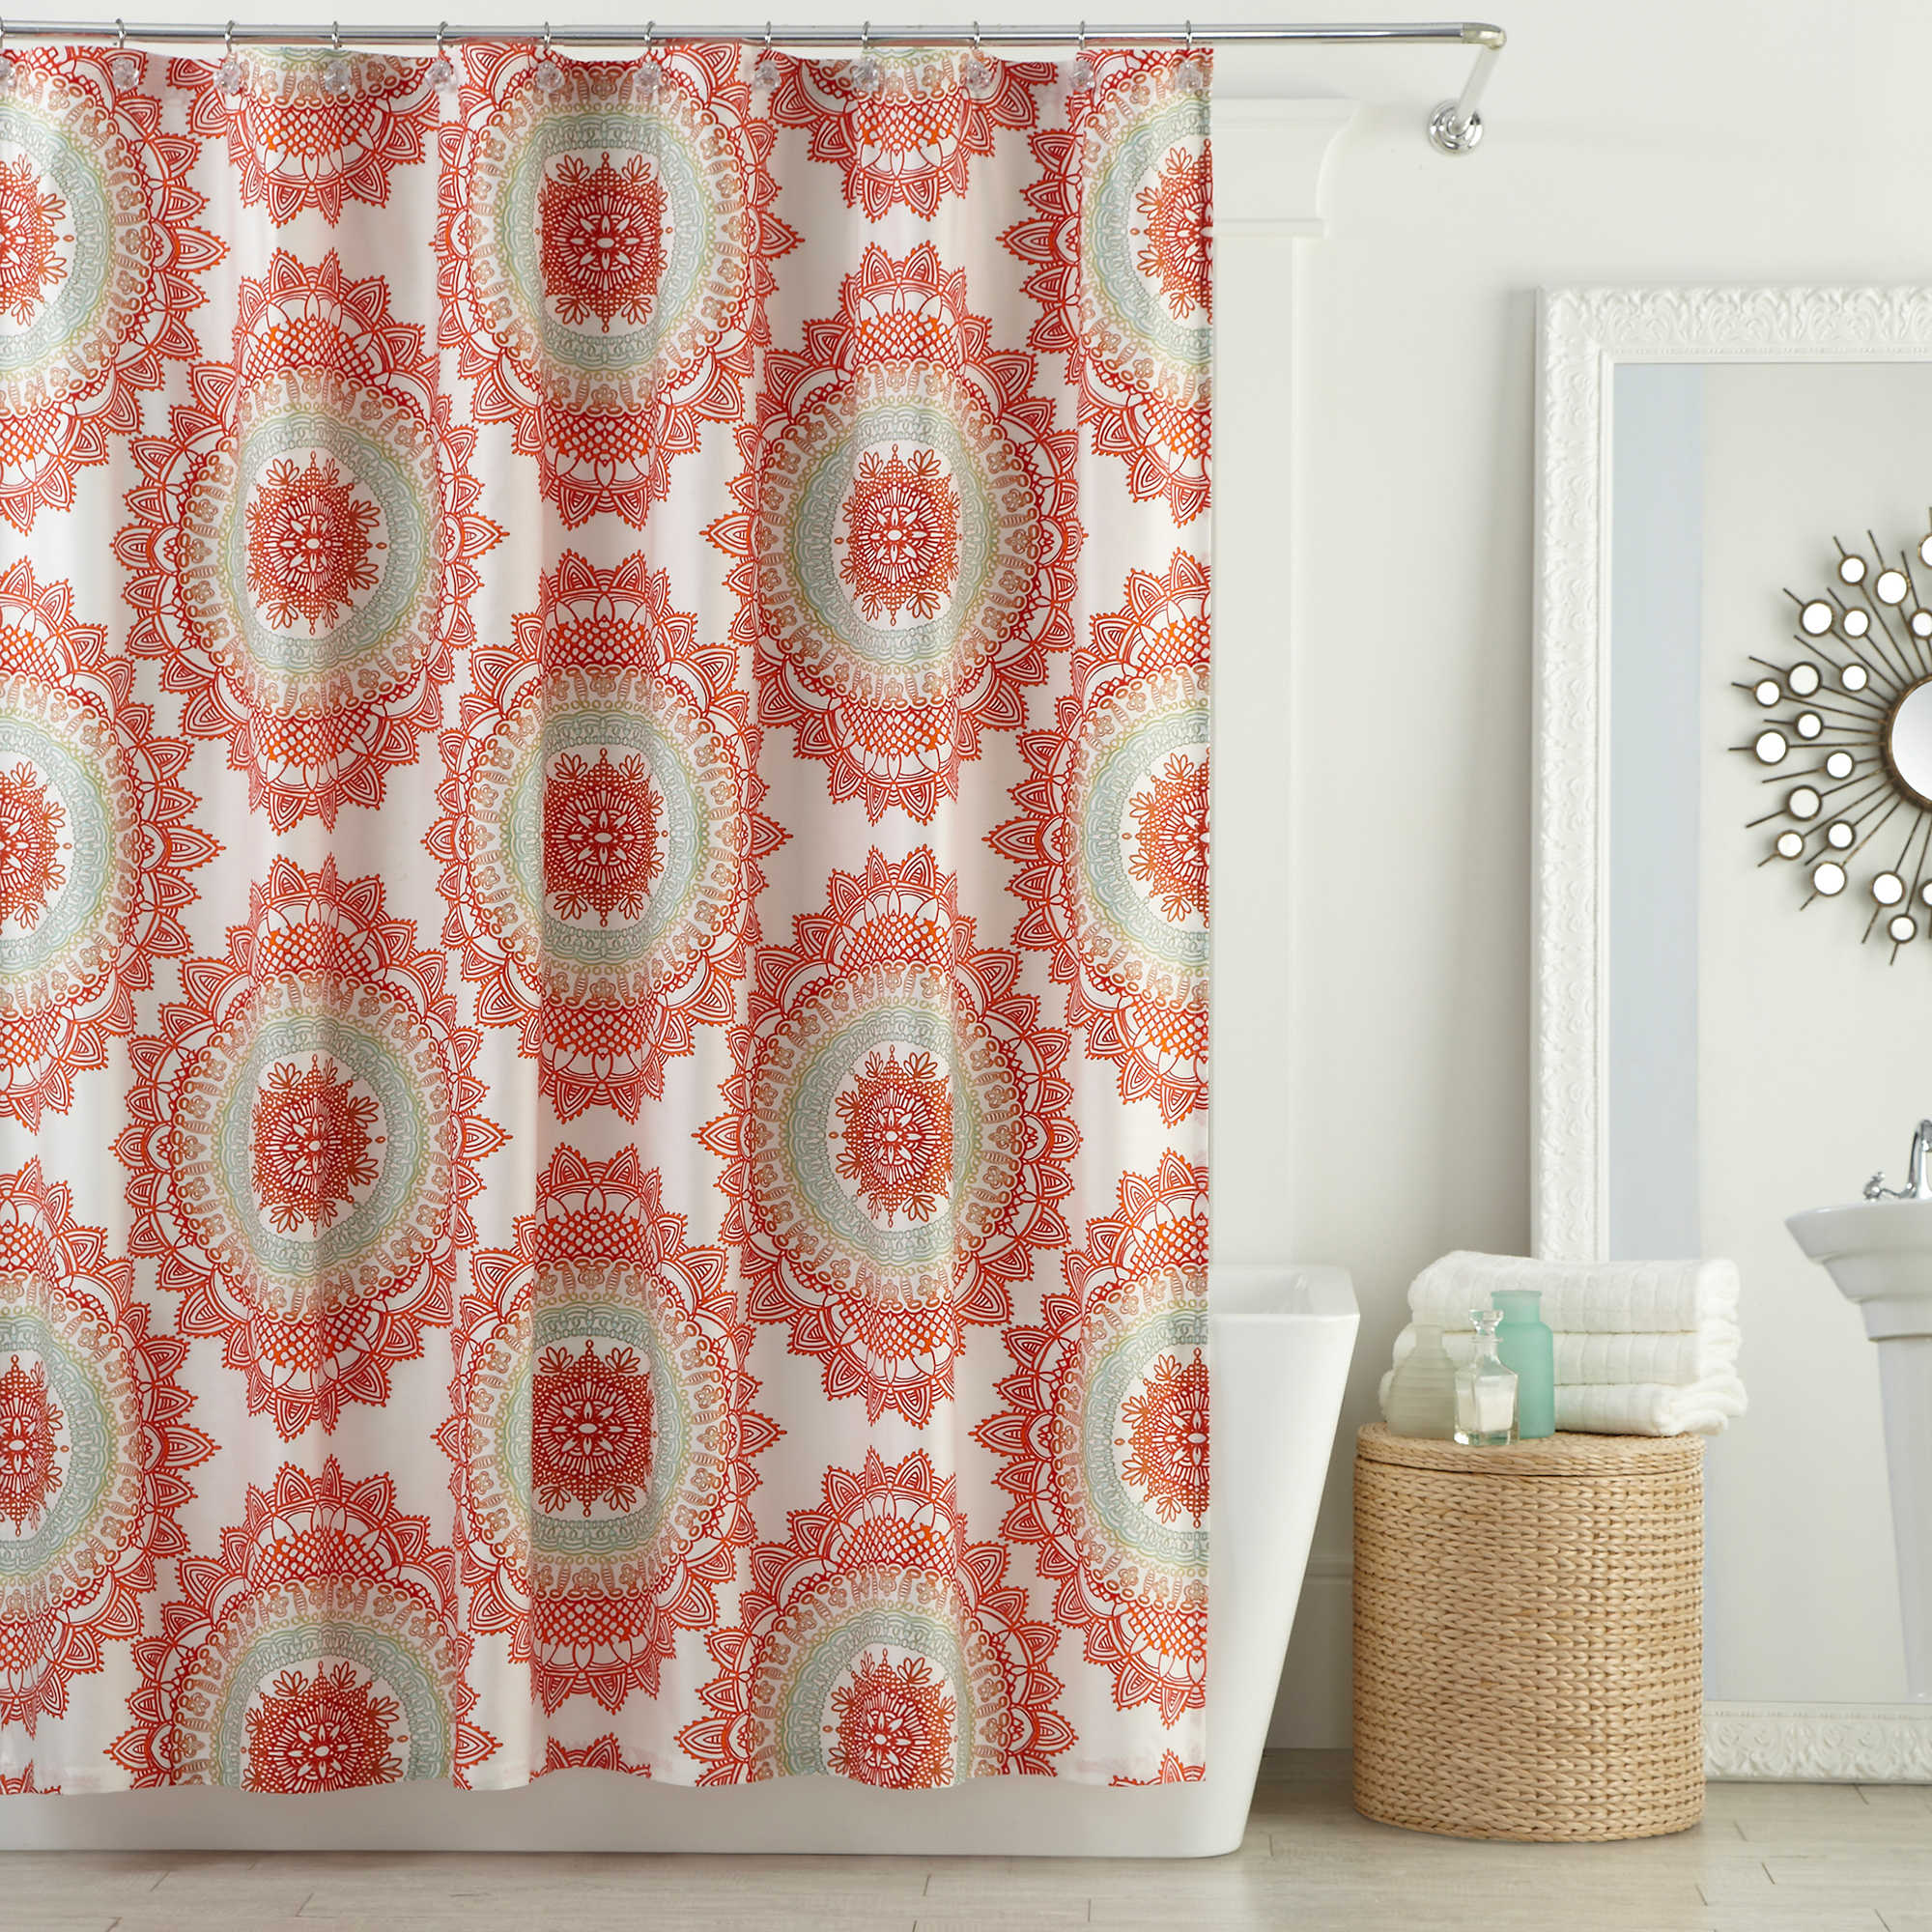 bed bath and beyond bedroom curtains gallery  yellowpage, Bedroom decor